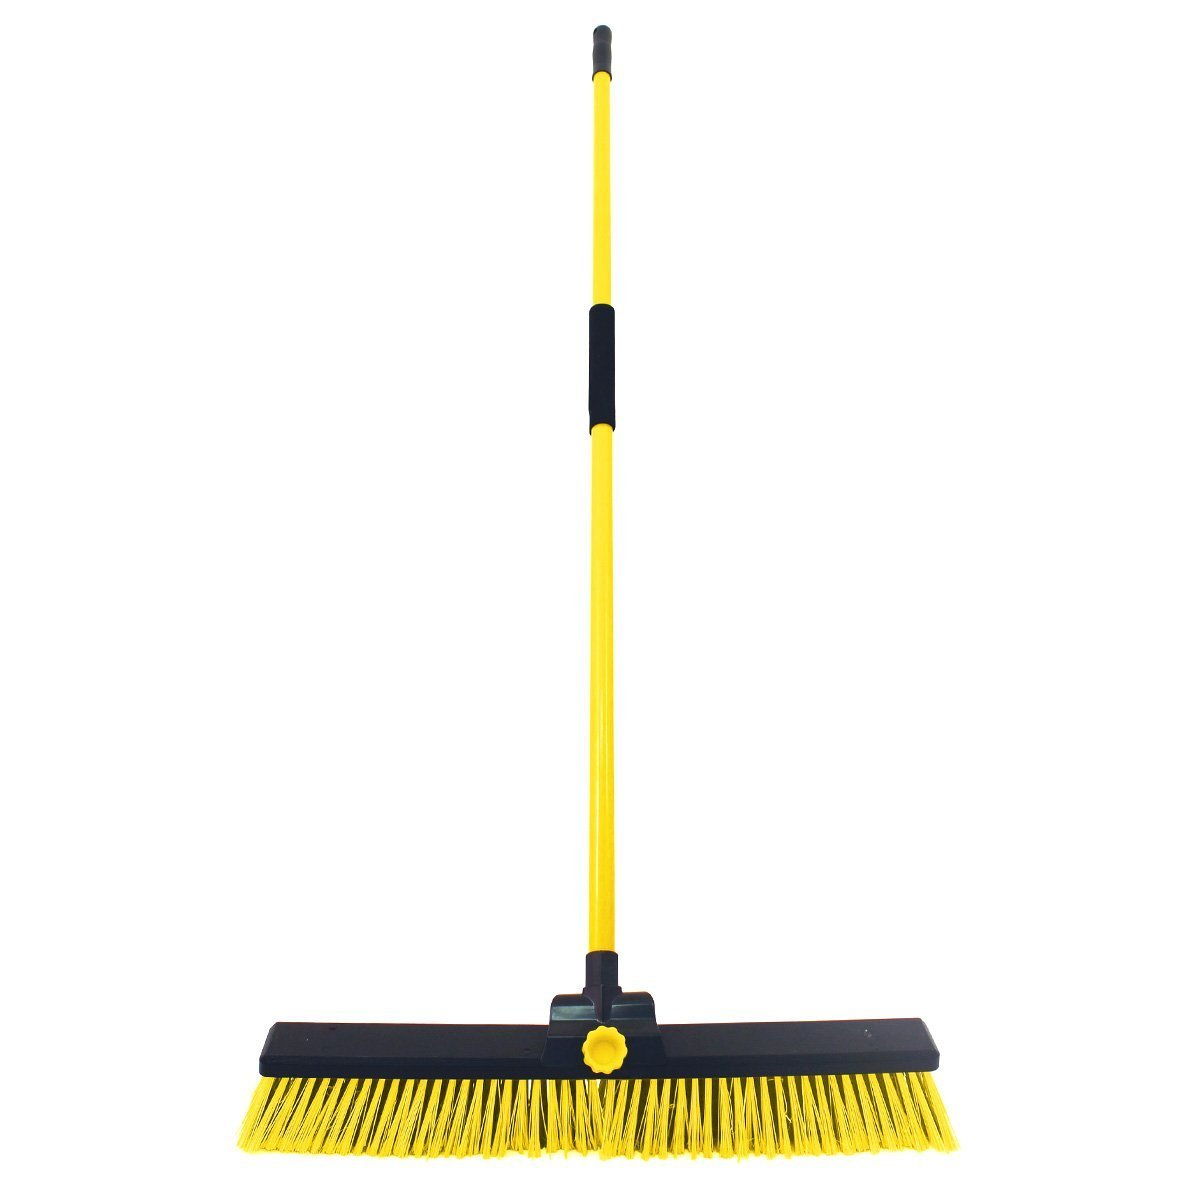 Bentley Garden Bulldozer Yard Broom Sweeper Heavy Duty Industrial With Handle